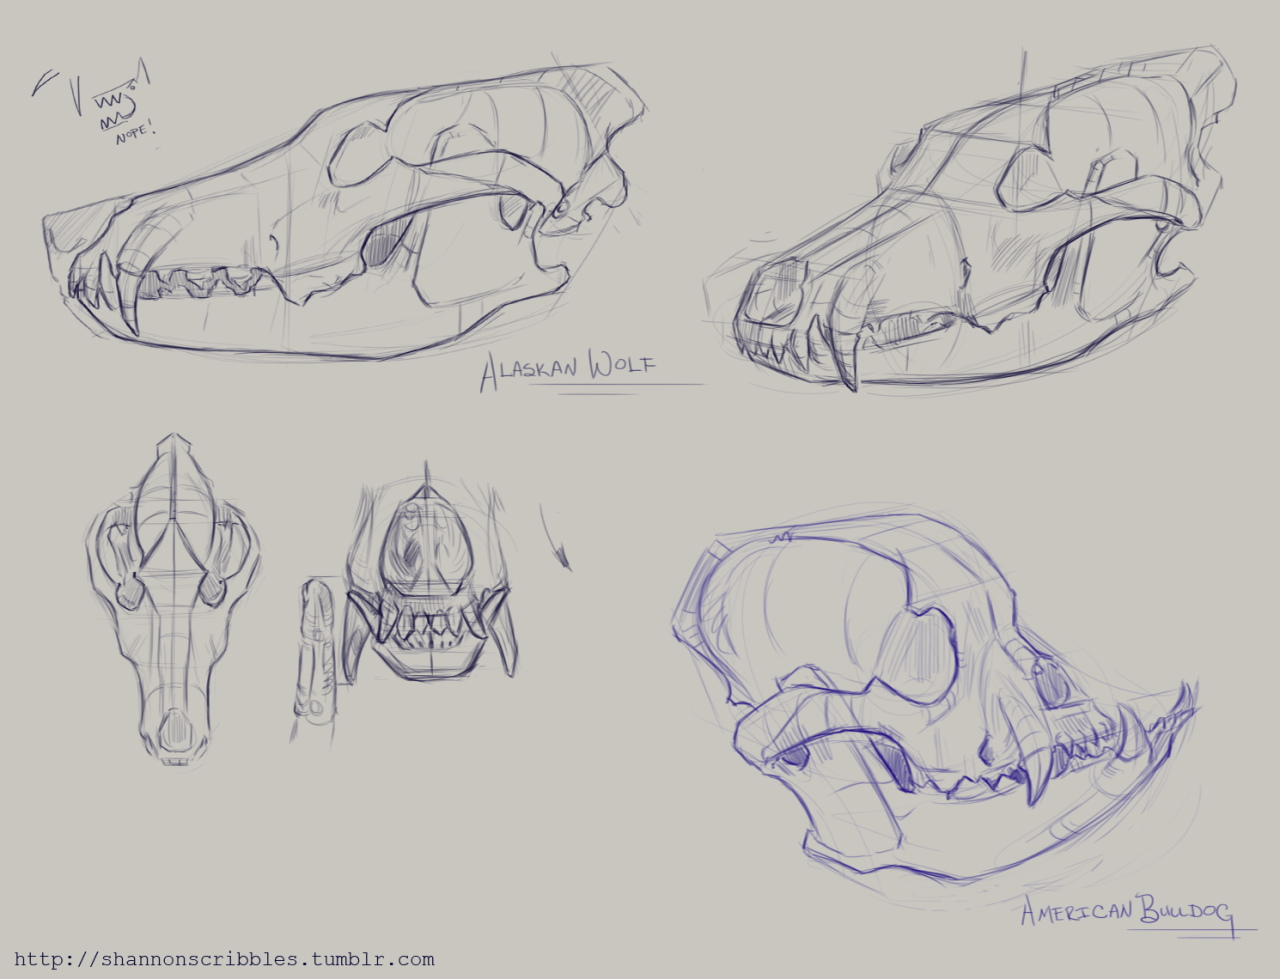 Canine skulls for the week 4 content. | Animal anatomy, Anatomy and ...